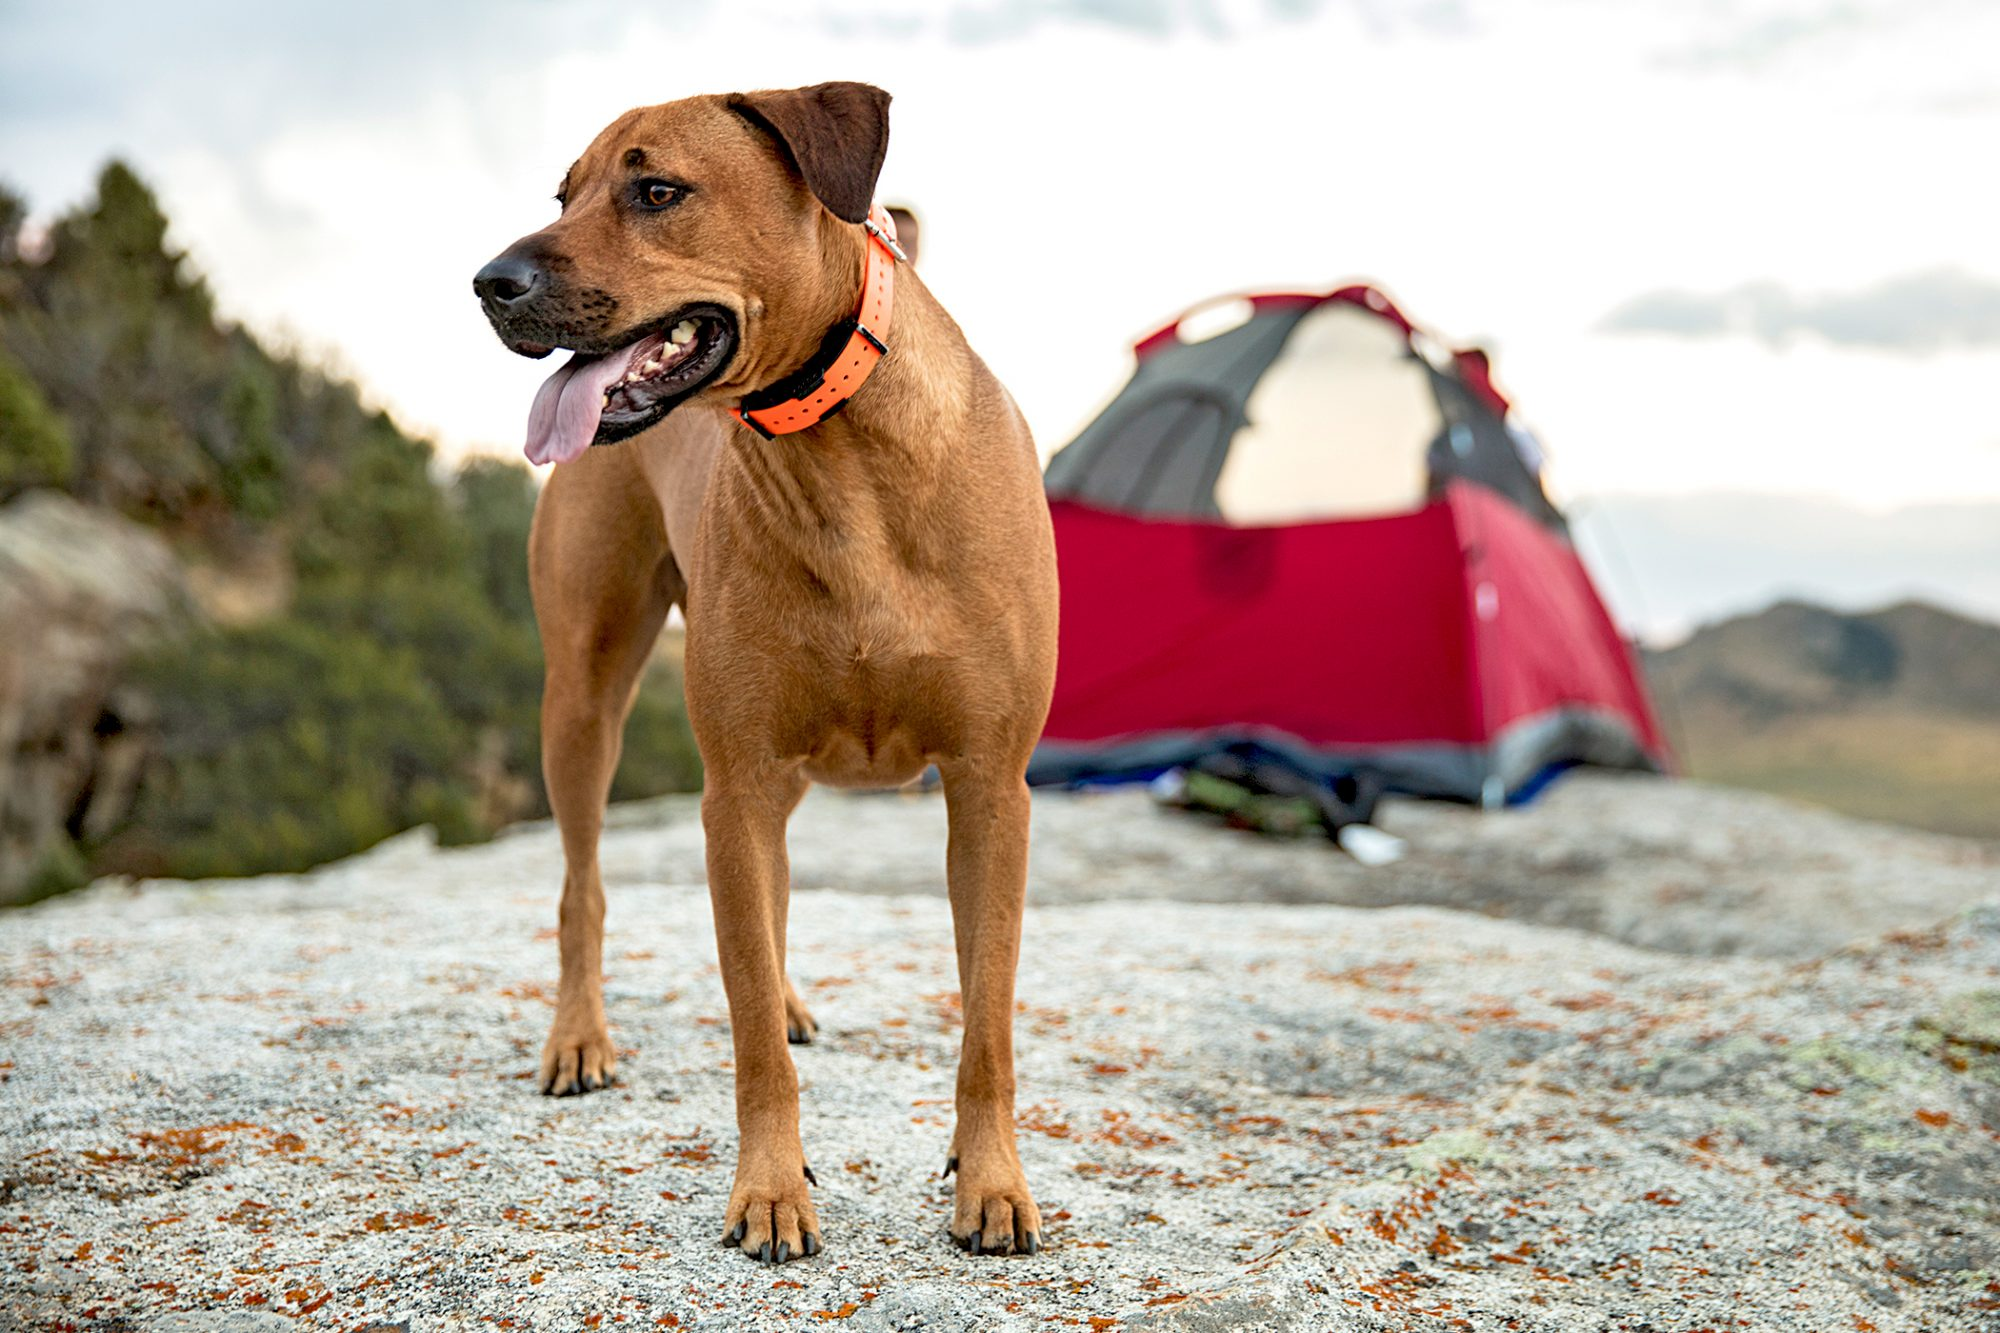 rhodesian ridgeback wearing an orange collar standing on a hill in front of a red tent